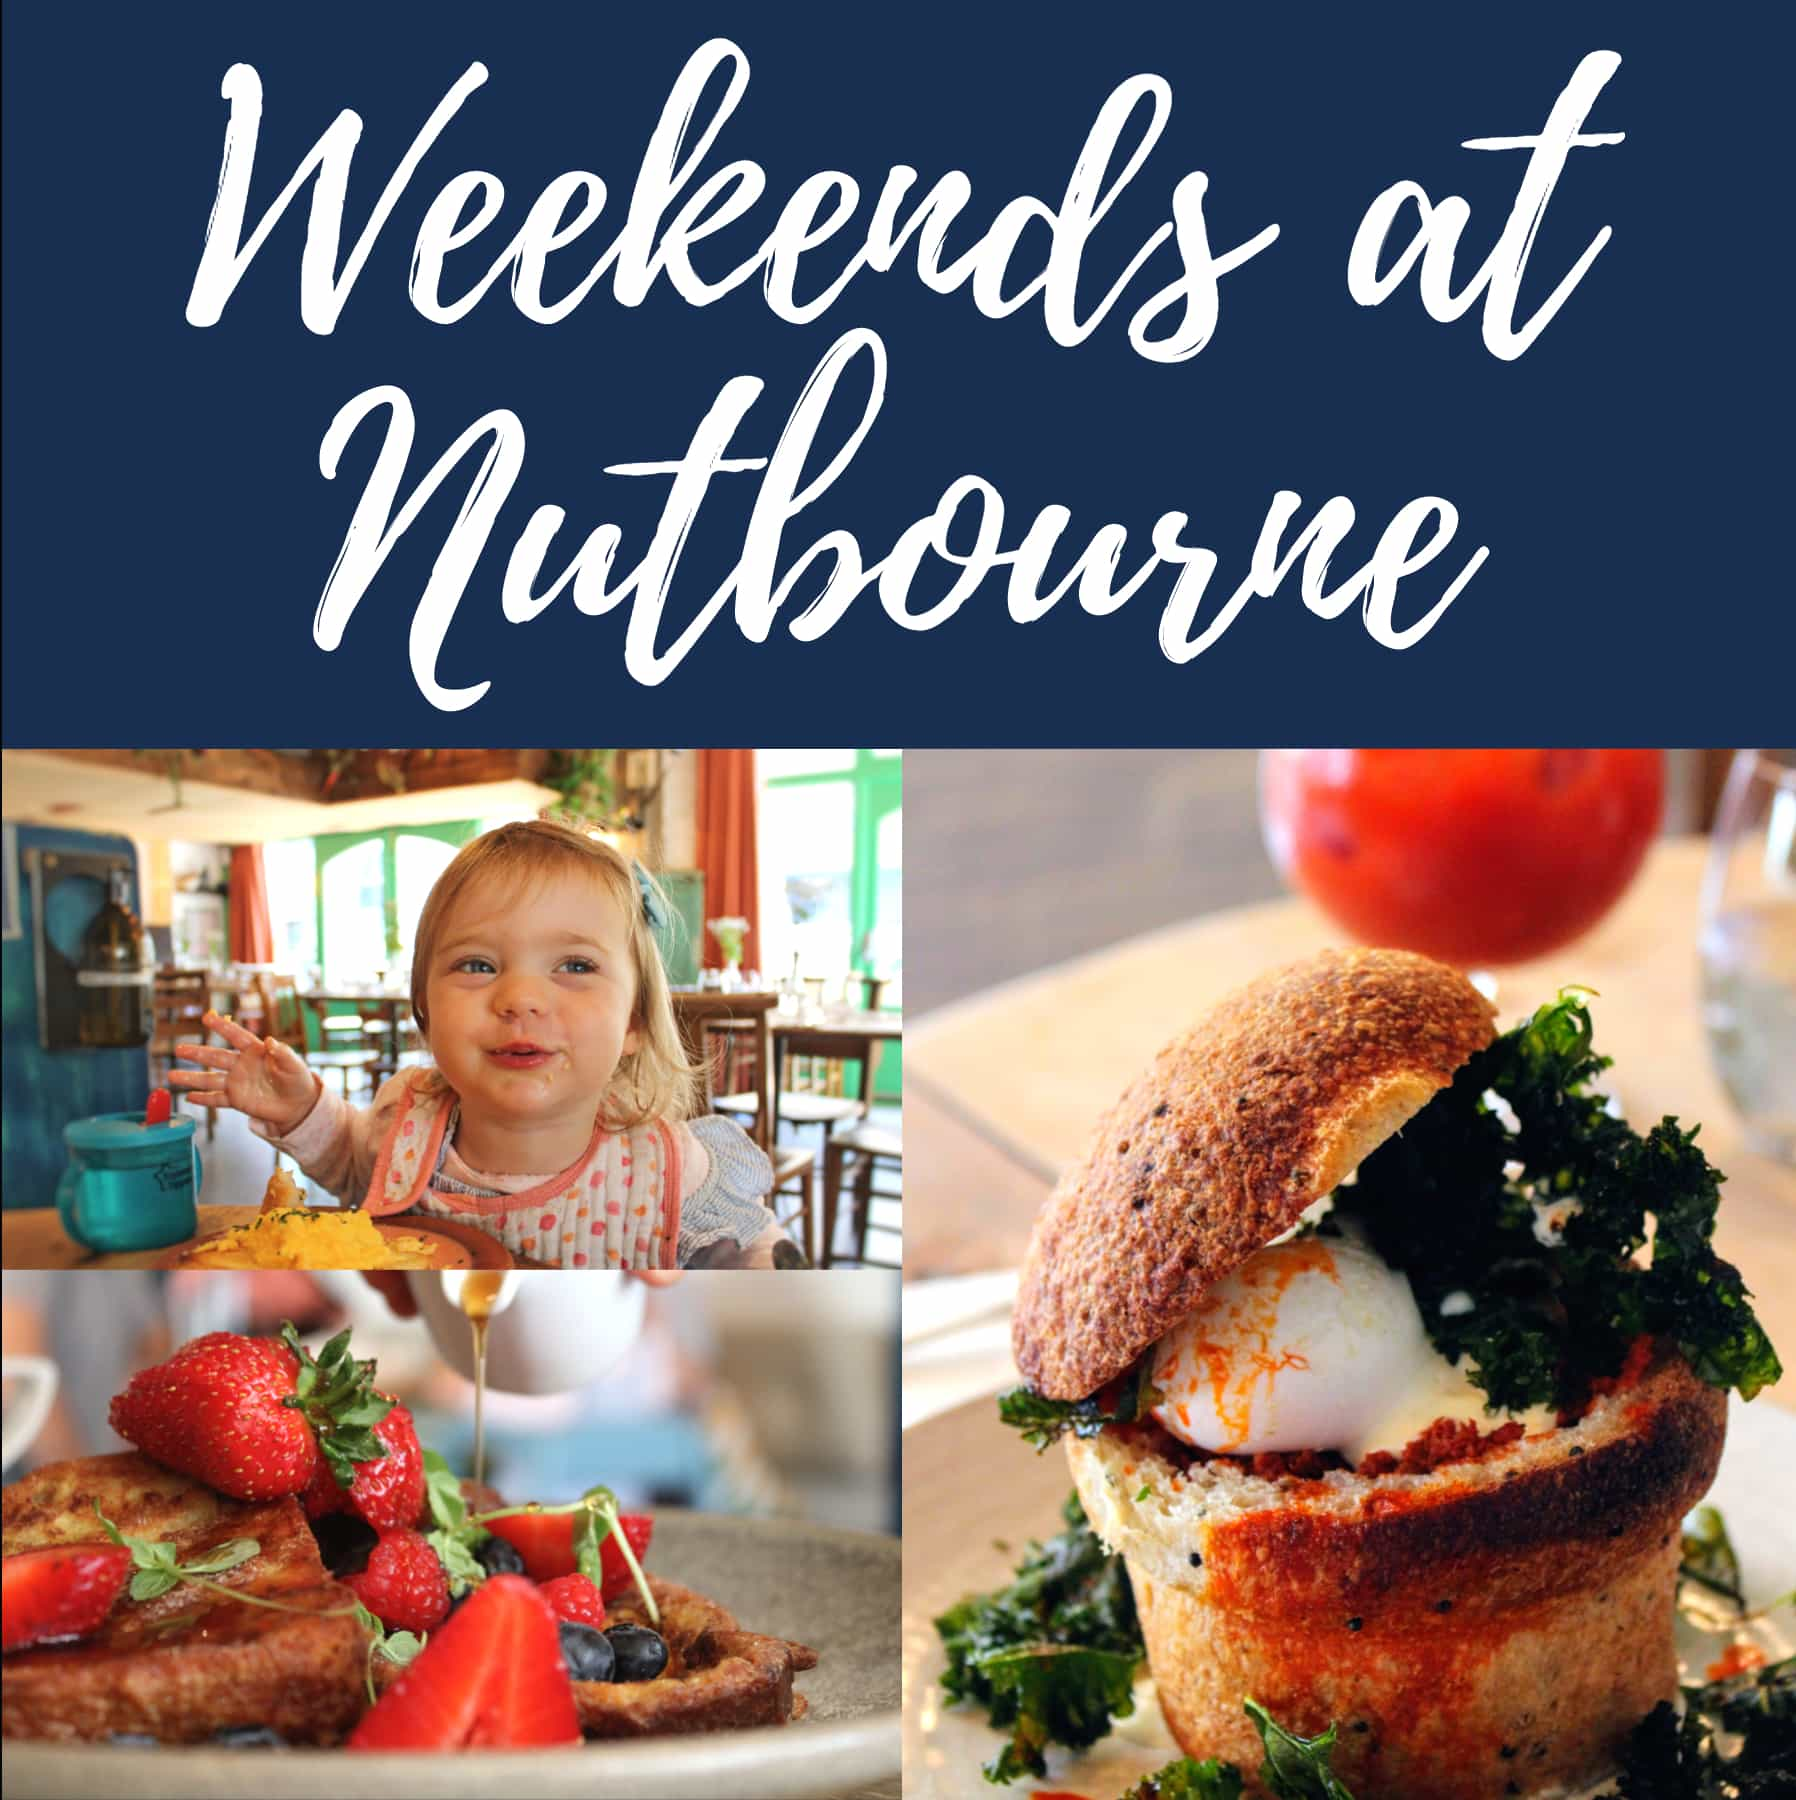 The Bank Holiday Weekend at Nutbourne